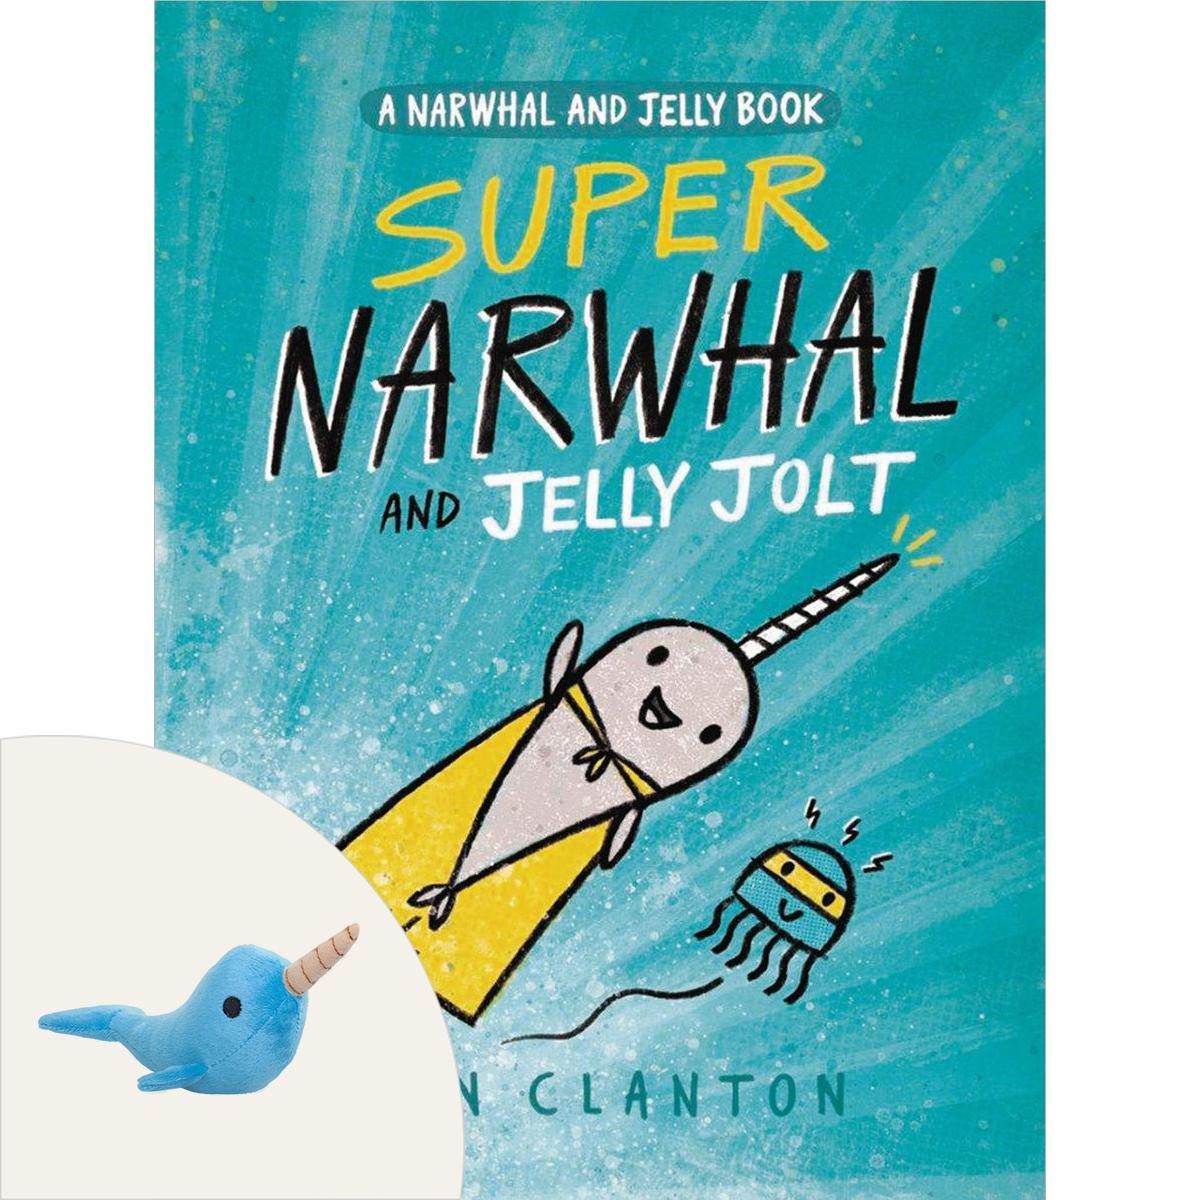 Super Narwhal and Jelly Jolt Pack